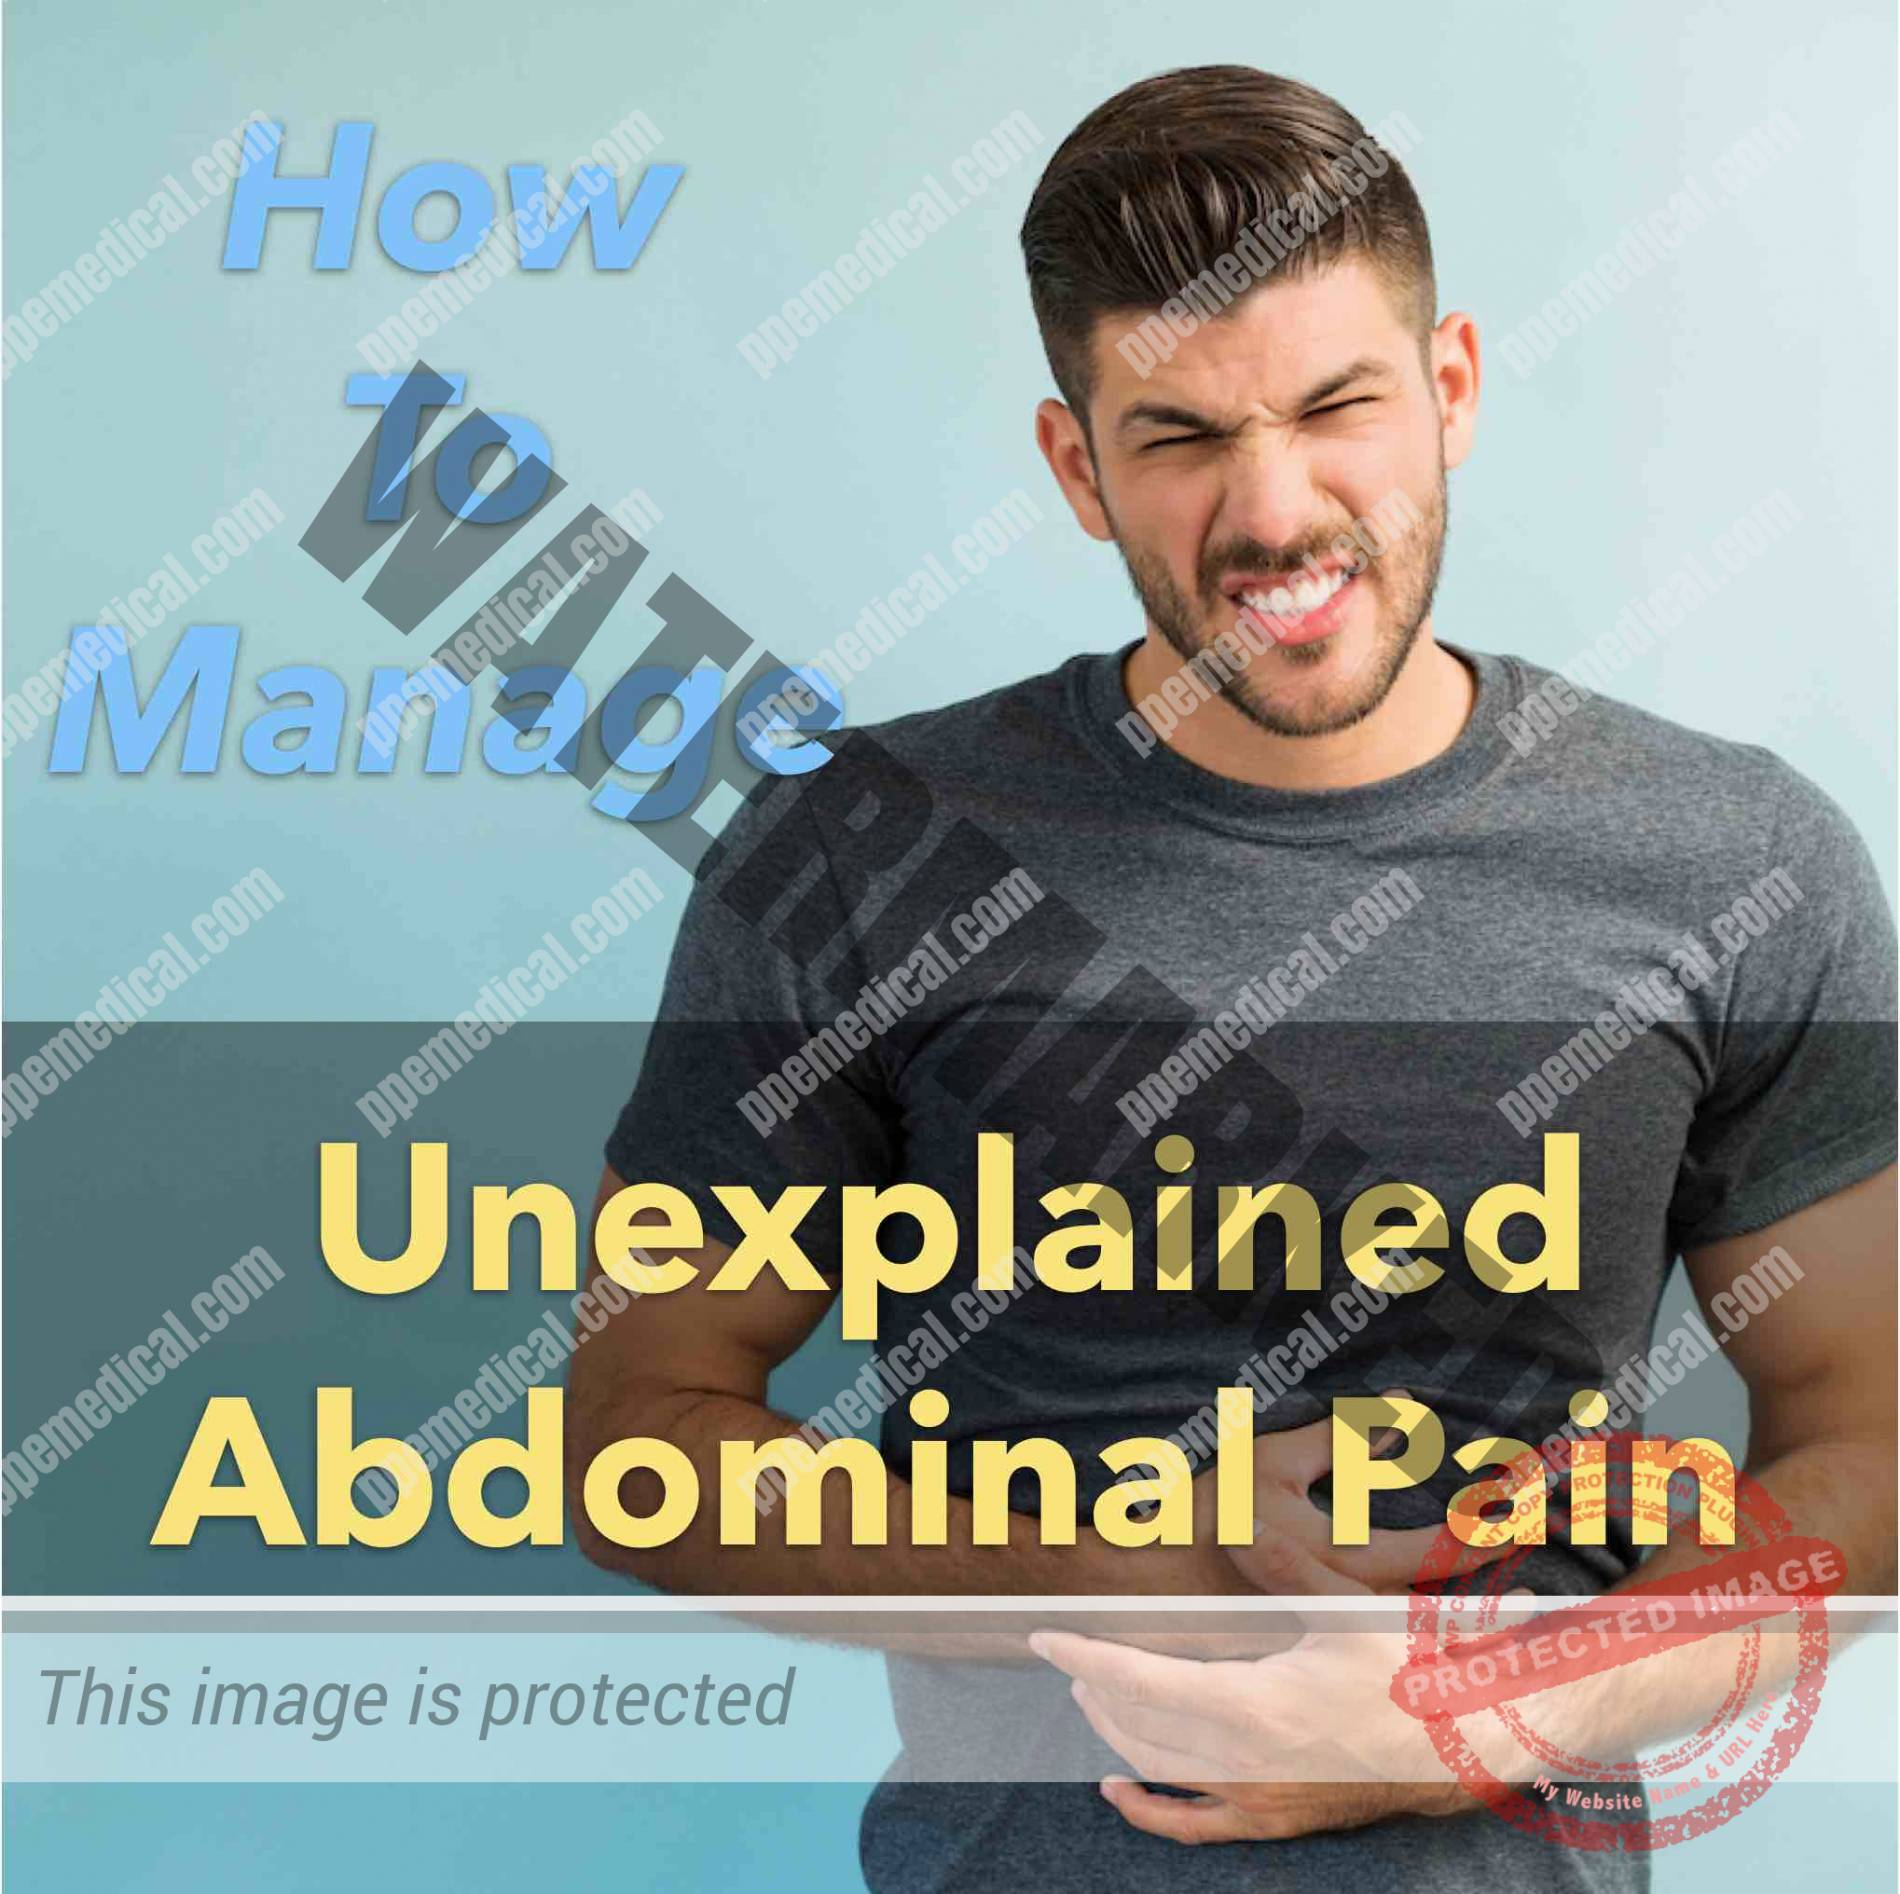 Unexplained Abdominal Pain